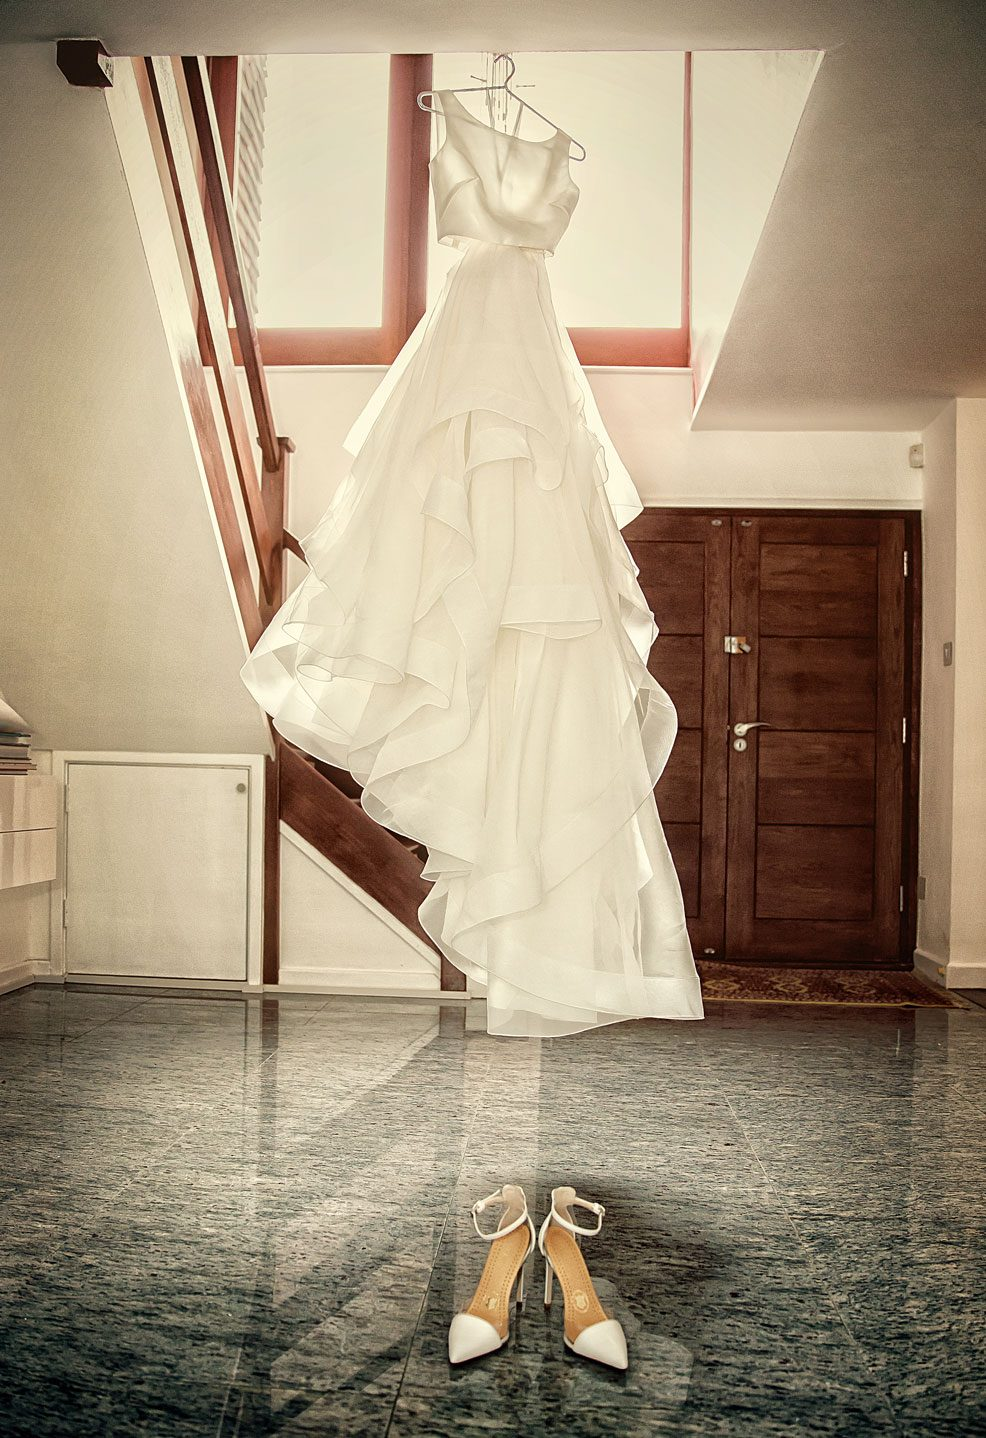 Bride's wedding dress hangs waiting for central London wedding image